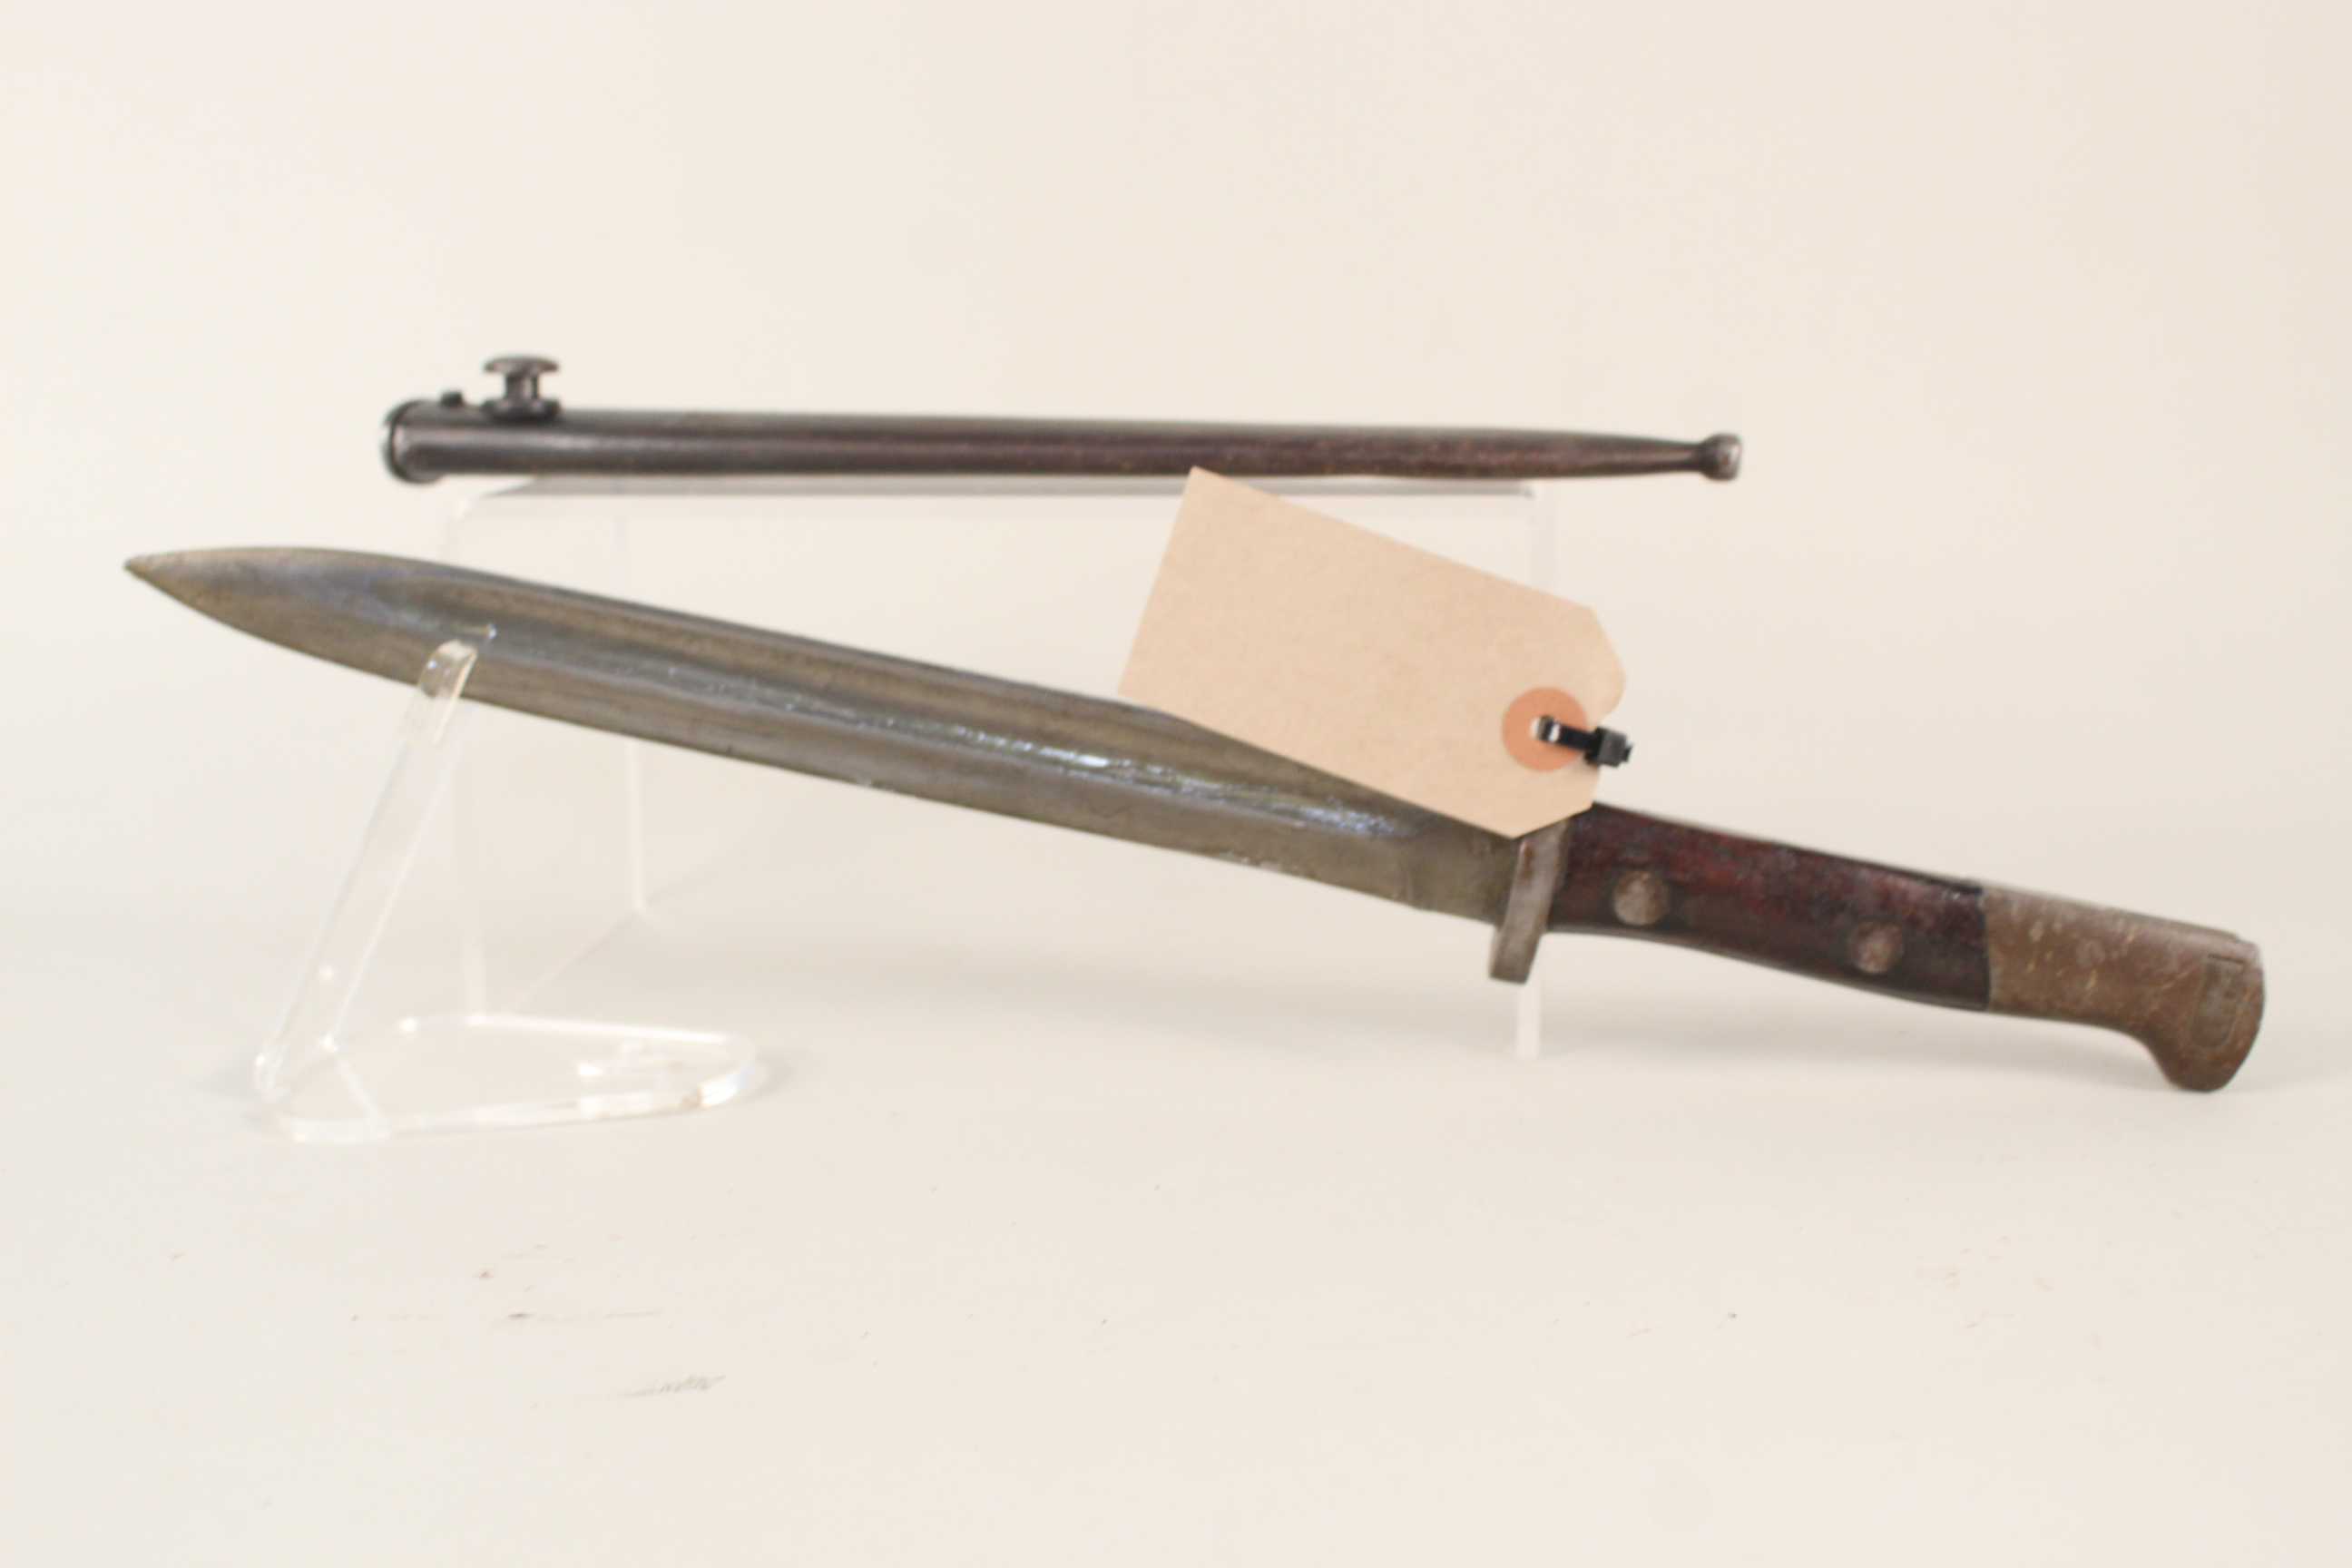 An Austrian export model 98 Mauser bayonet with metal scabbard - Image 2 of 4